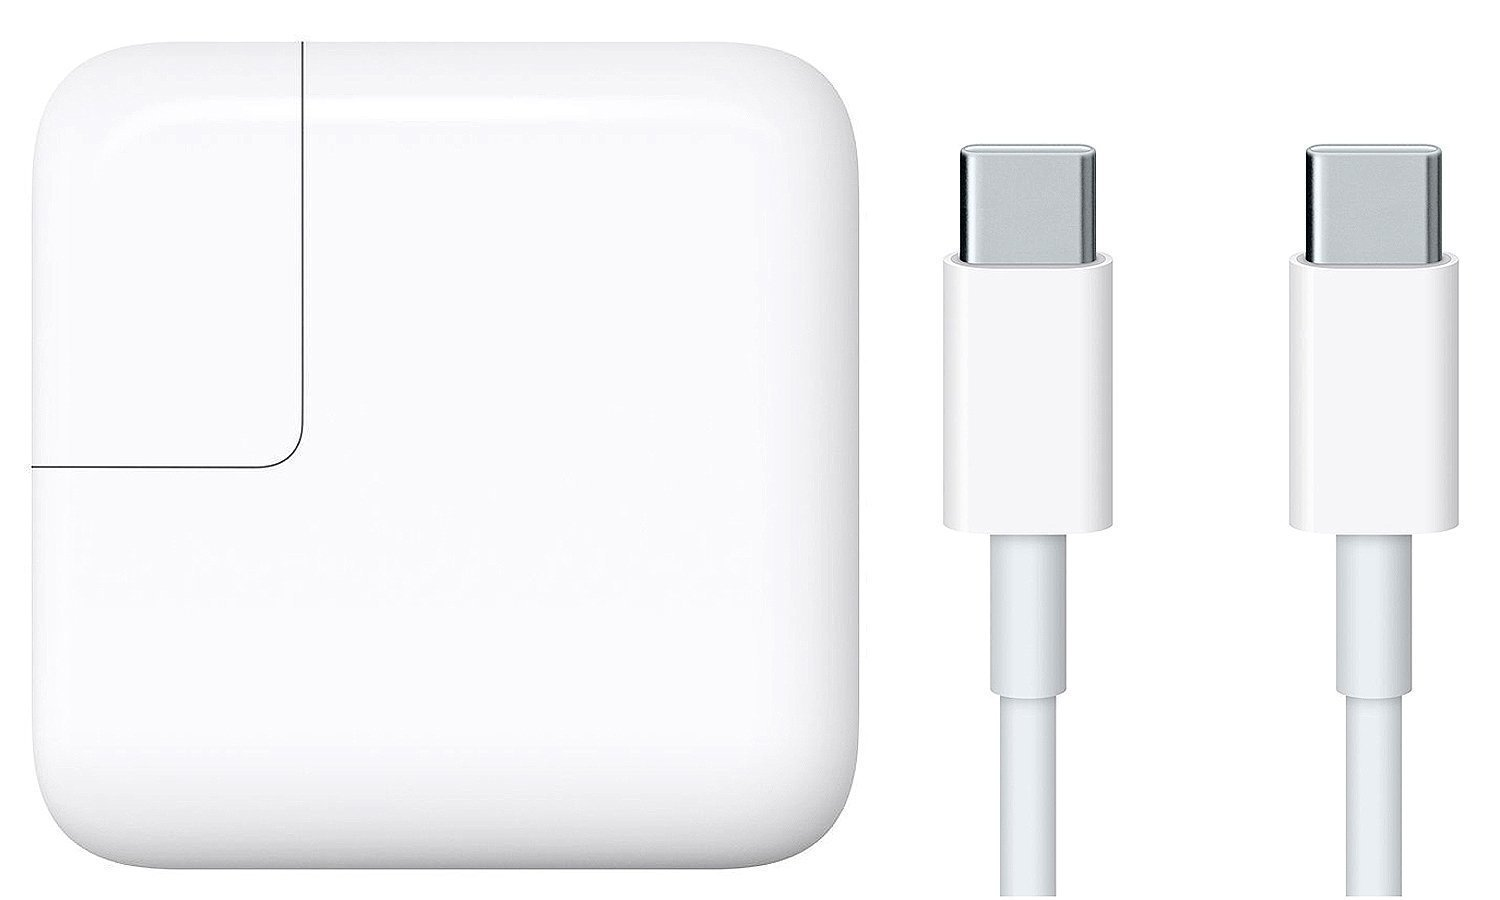 E EGOWAY Egoway 29W USB-C AC Power Adapter Charger for Apple Macbook 12 in MJ262LL/A (Only for 2015 version) with USB-C to USB-C Charge Cable